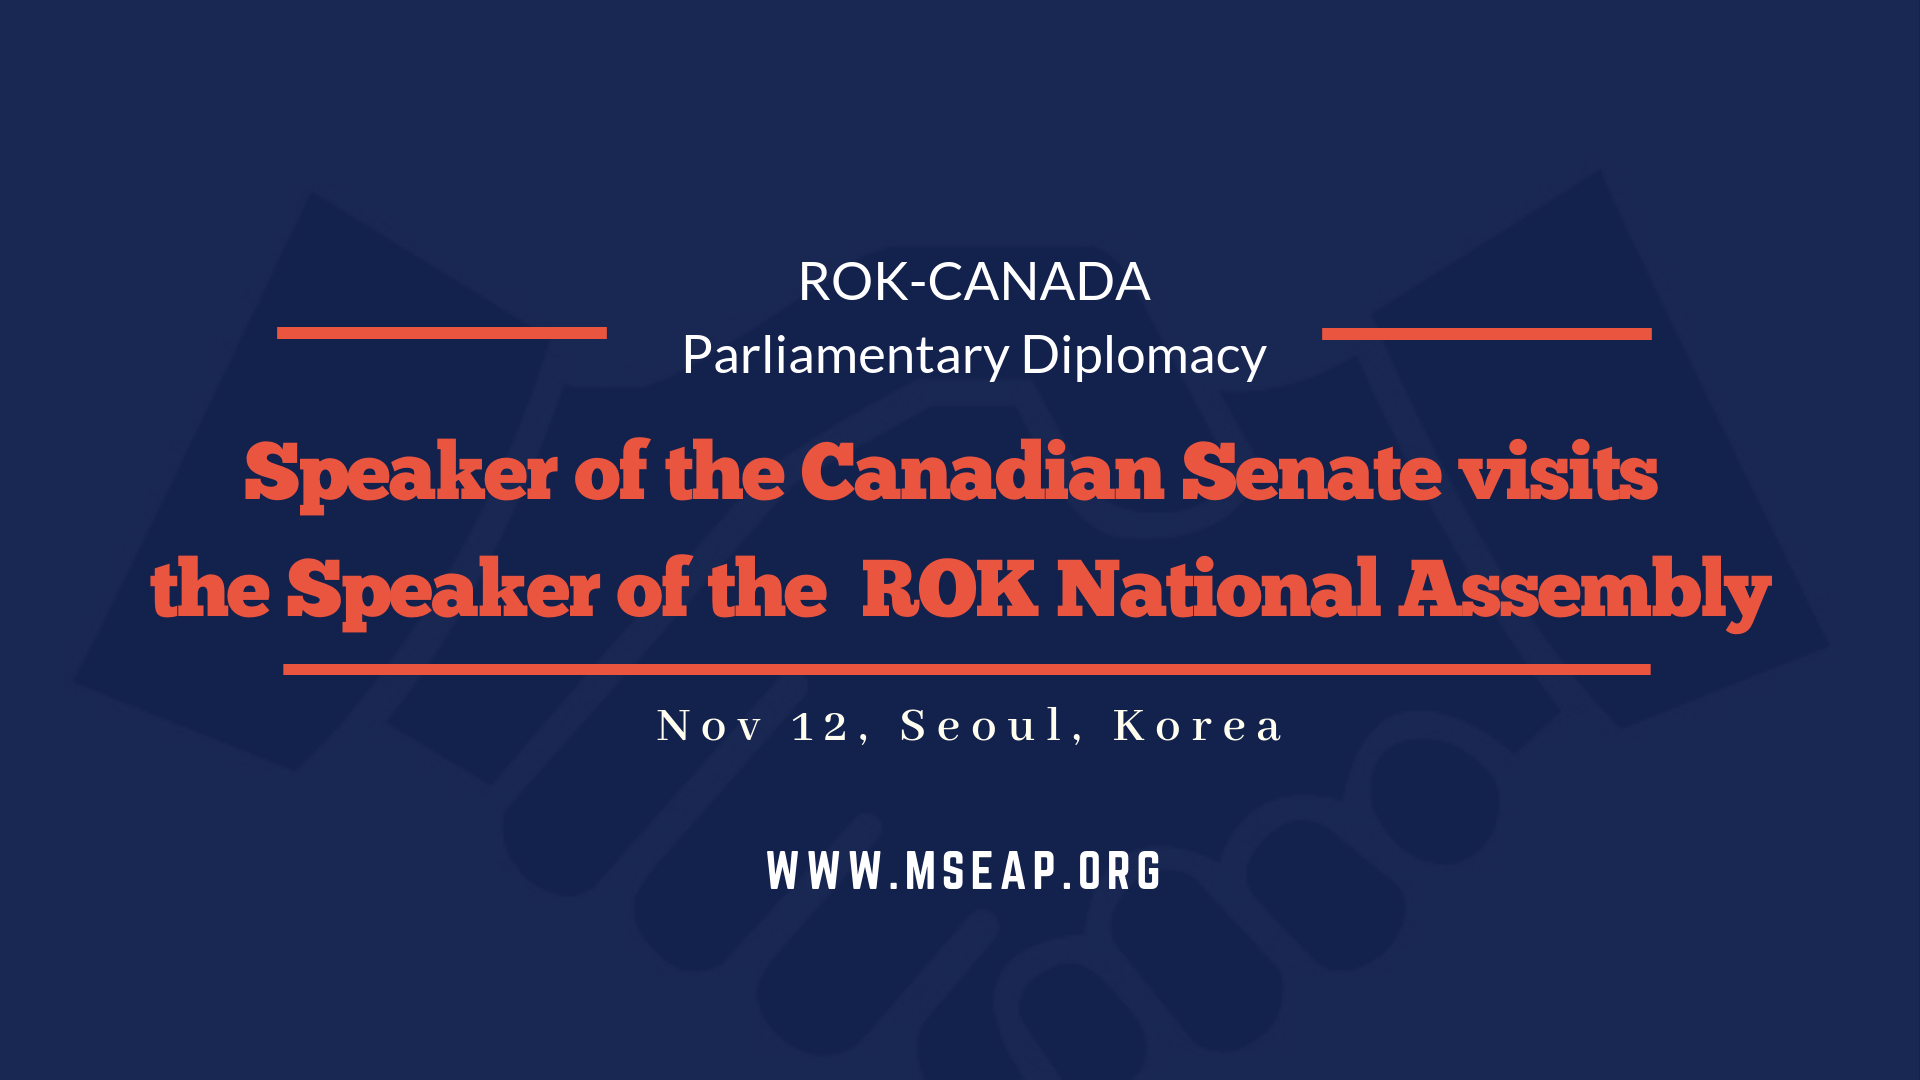 Speaker of the Canadian Senate meets the Speaker of the ROK National Assembly